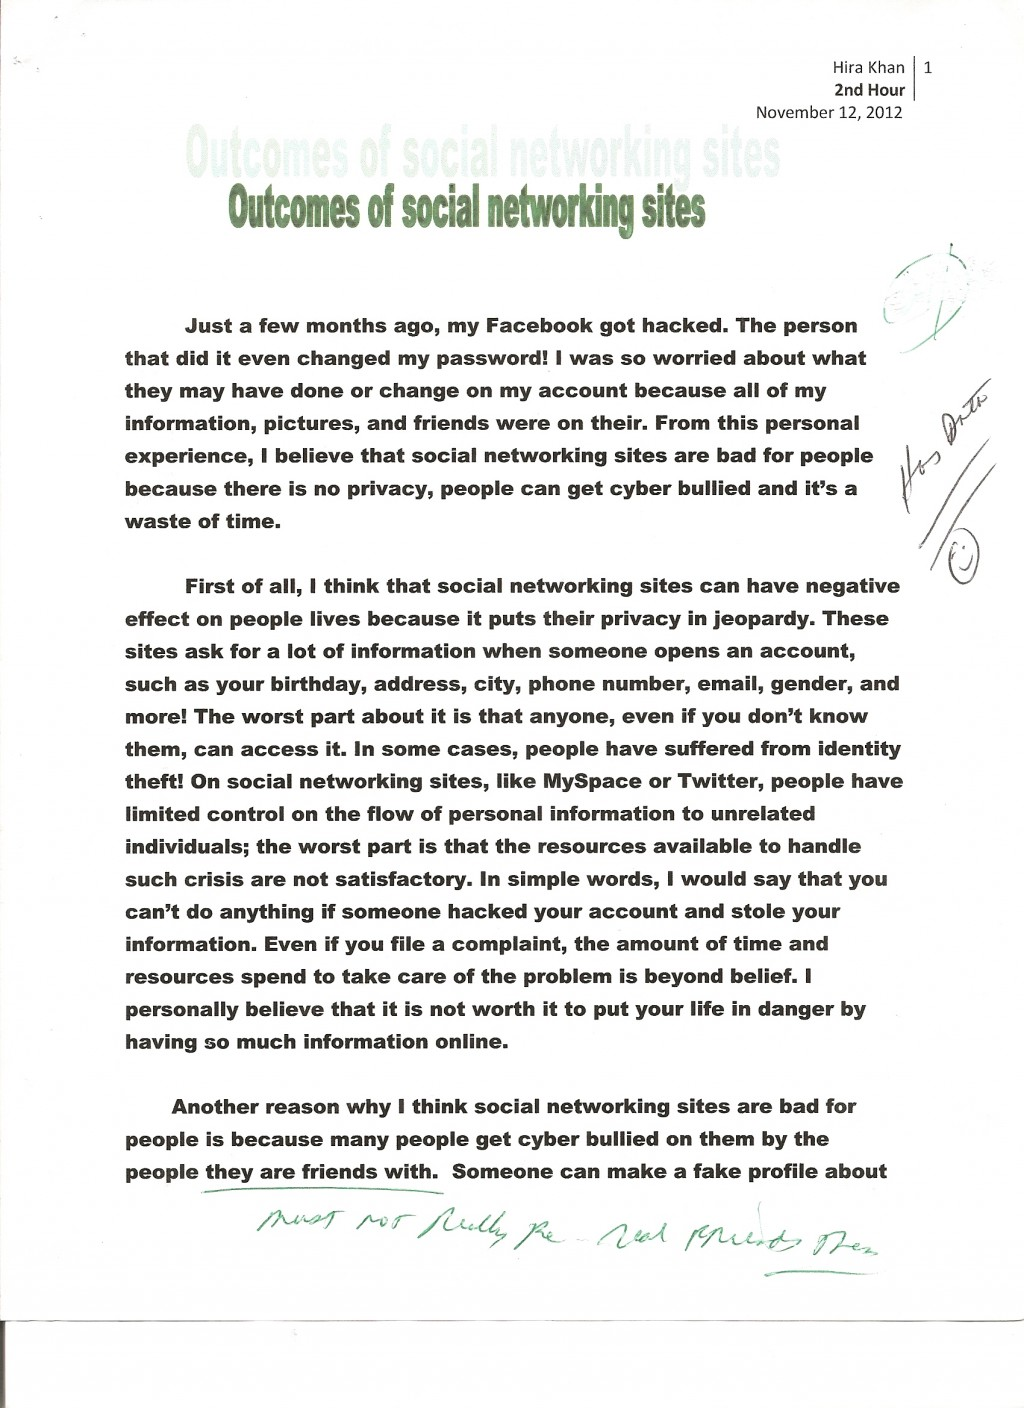 007 Essay Example Social Networking 1 Opinion About Fast Unbelievable Food Is A Good Alternative To Cooking For Yourself An British Council Large